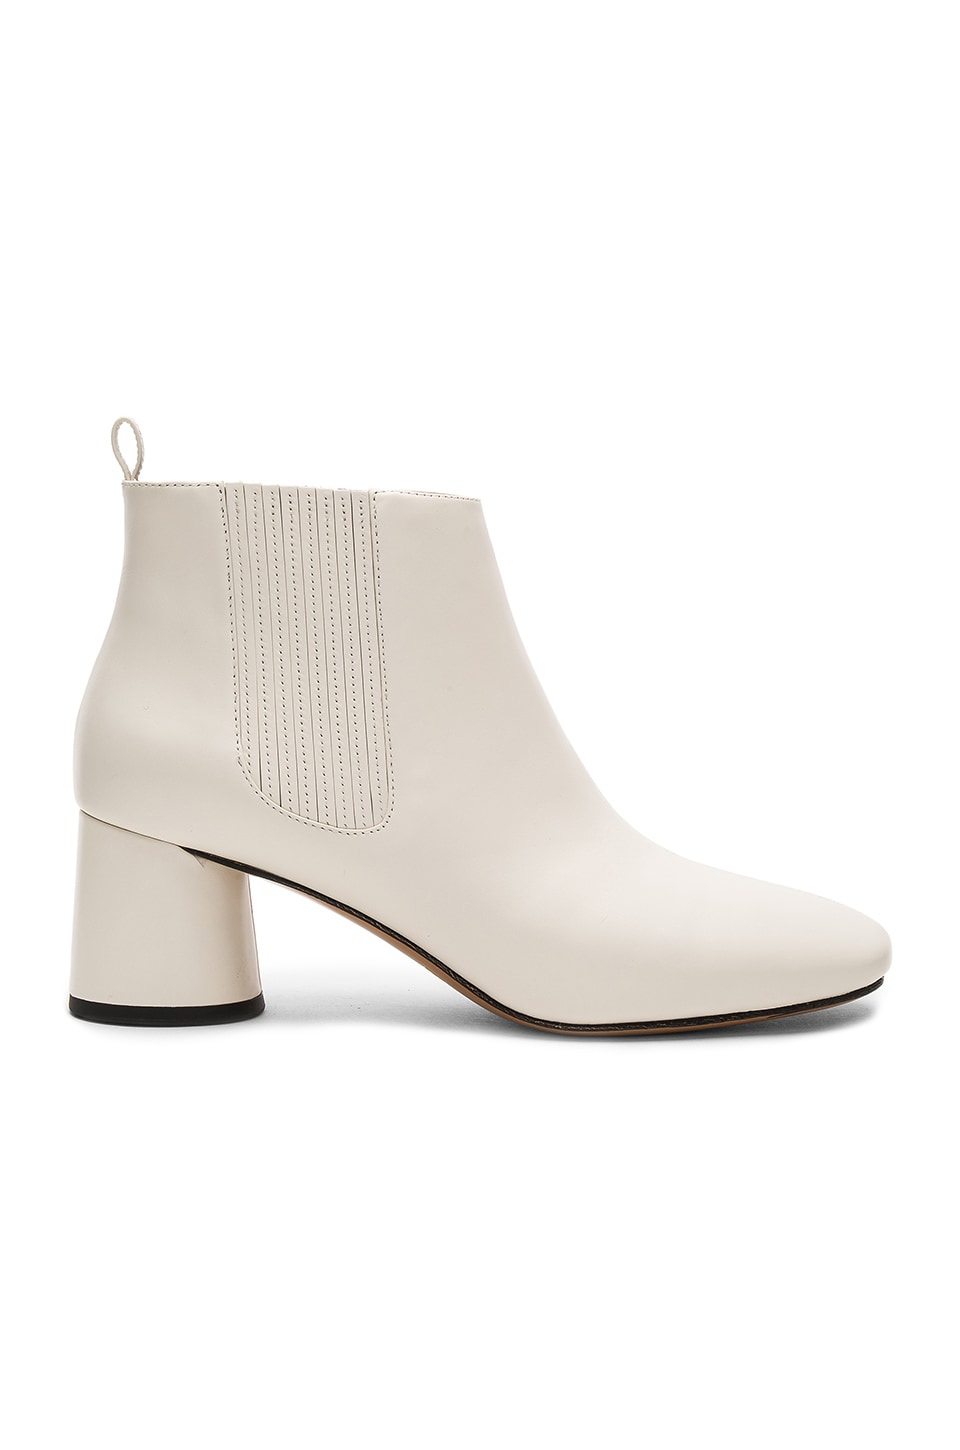 Rocket Chelsea Boot by Marc Jacobs